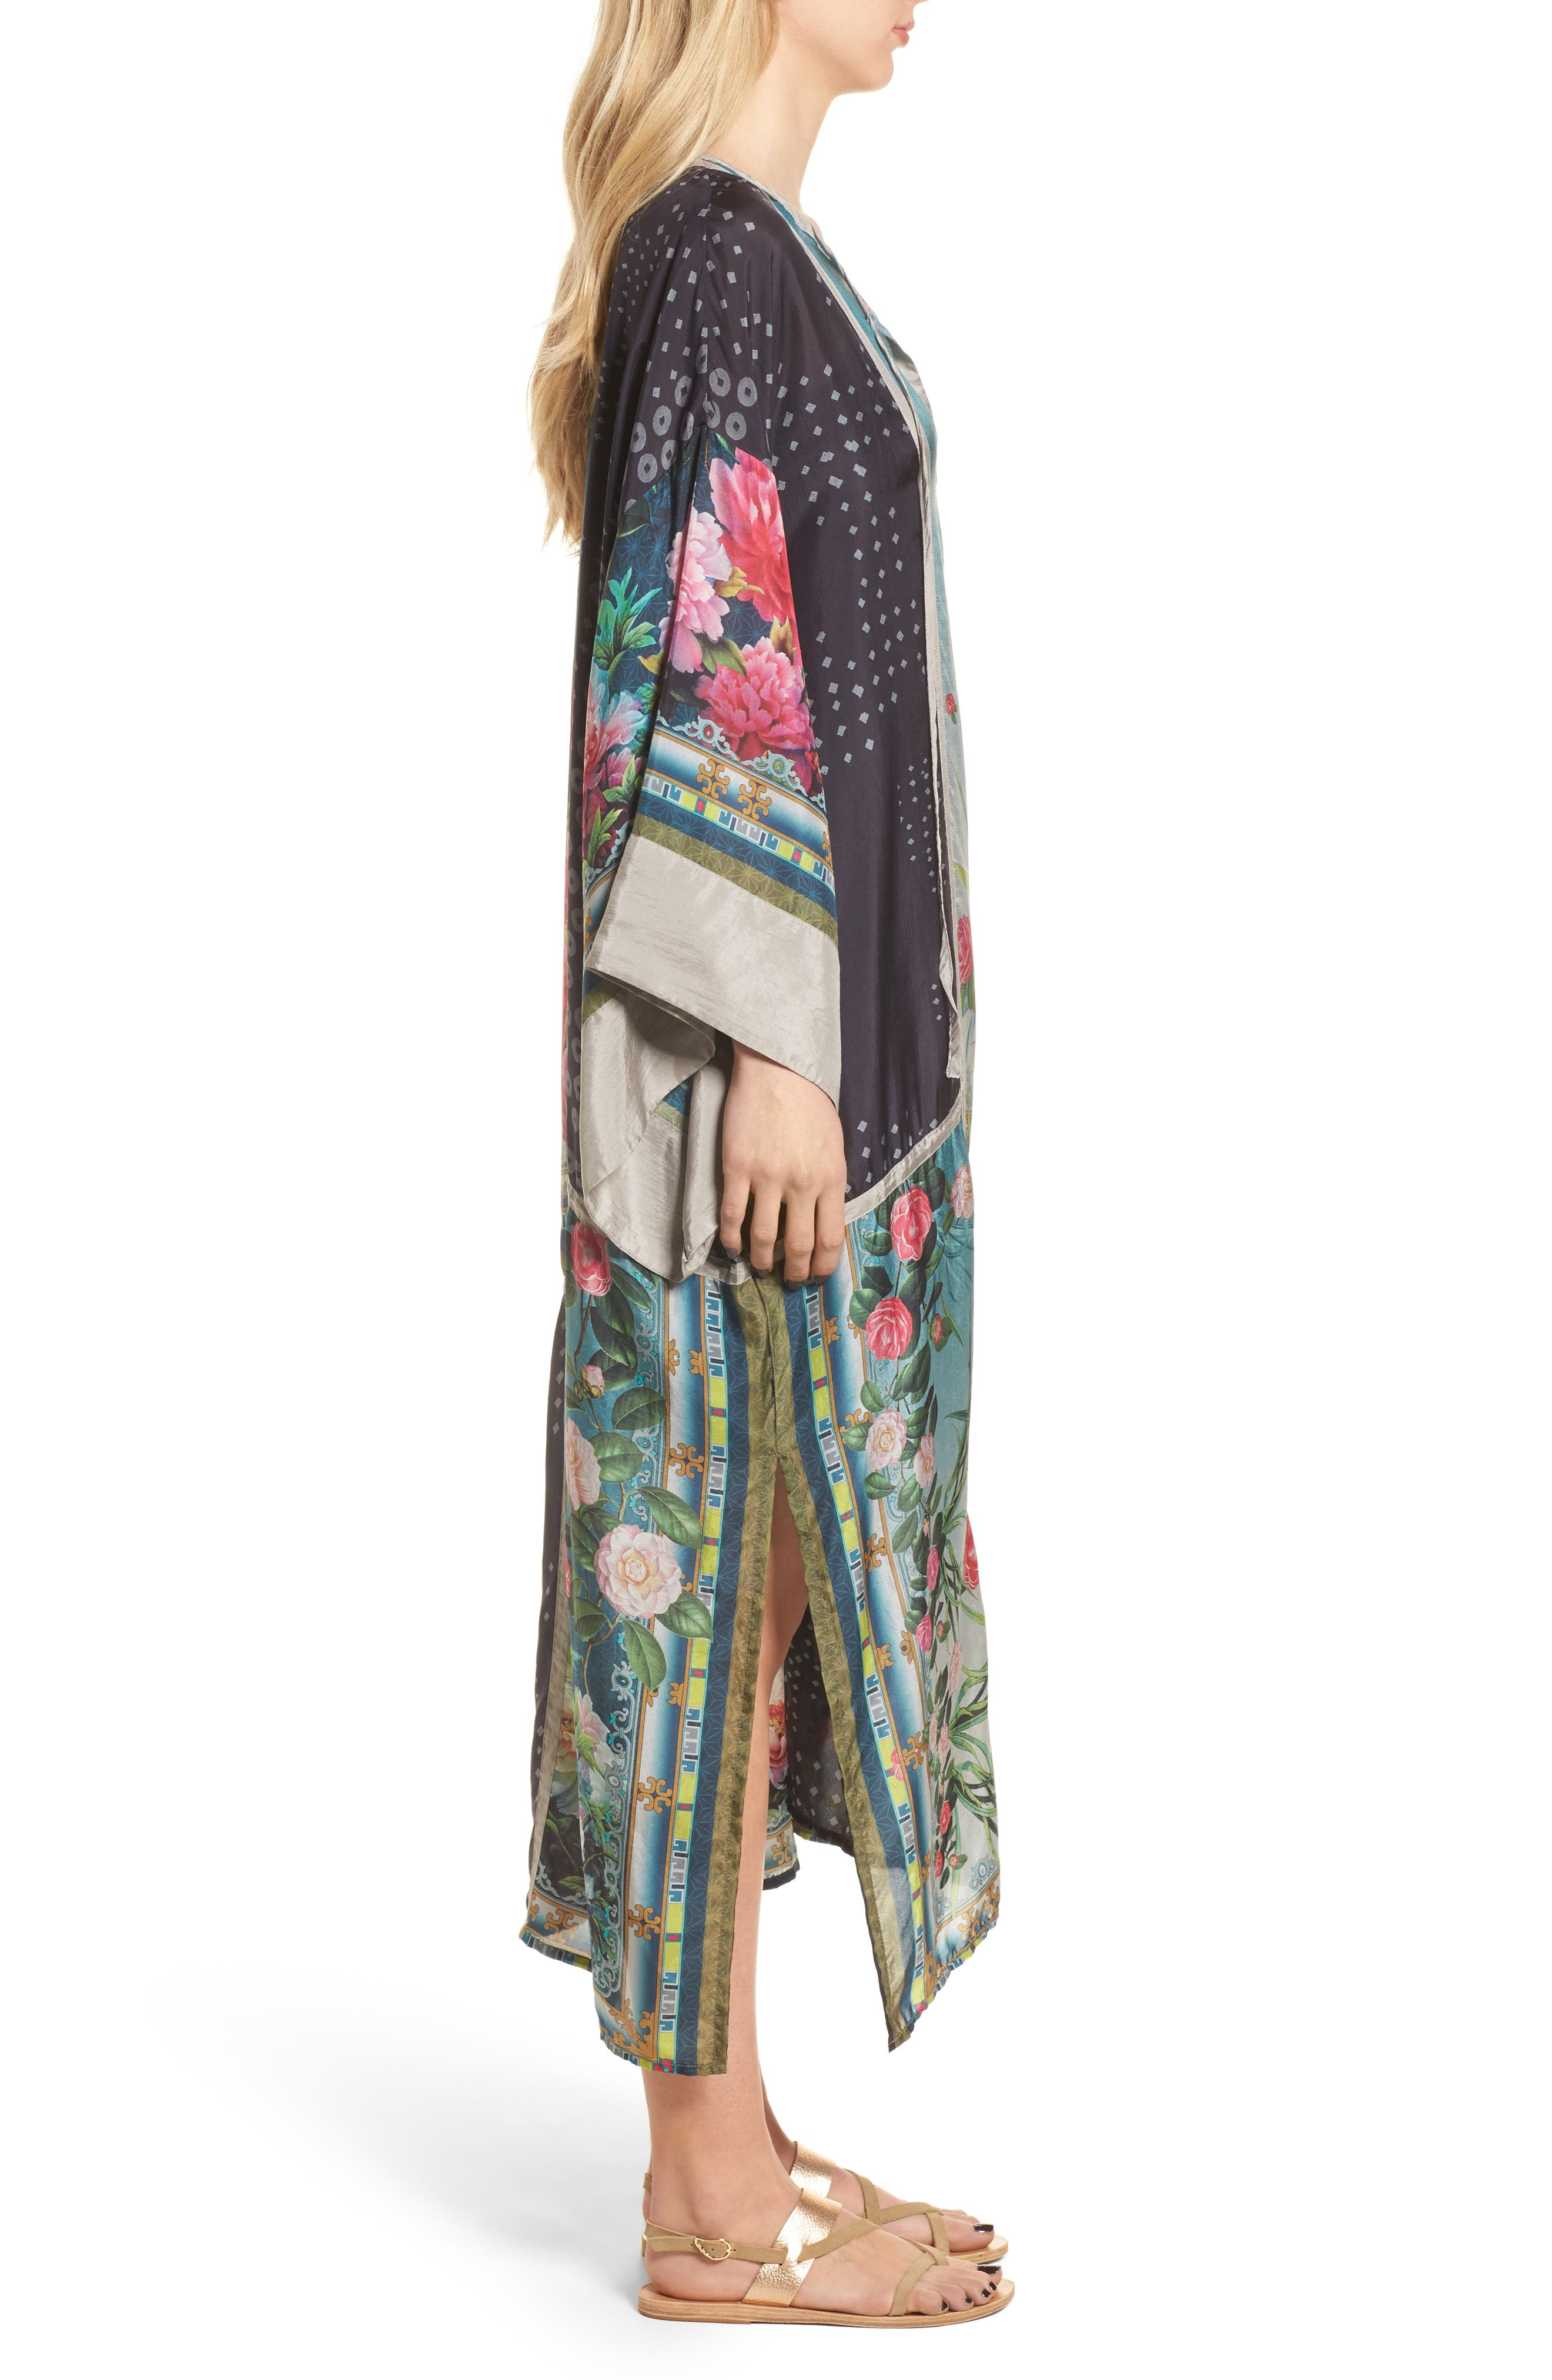 Camuba Heaven Silk Kimono Dress,                             Alternate thumbnail 3, color,                             010